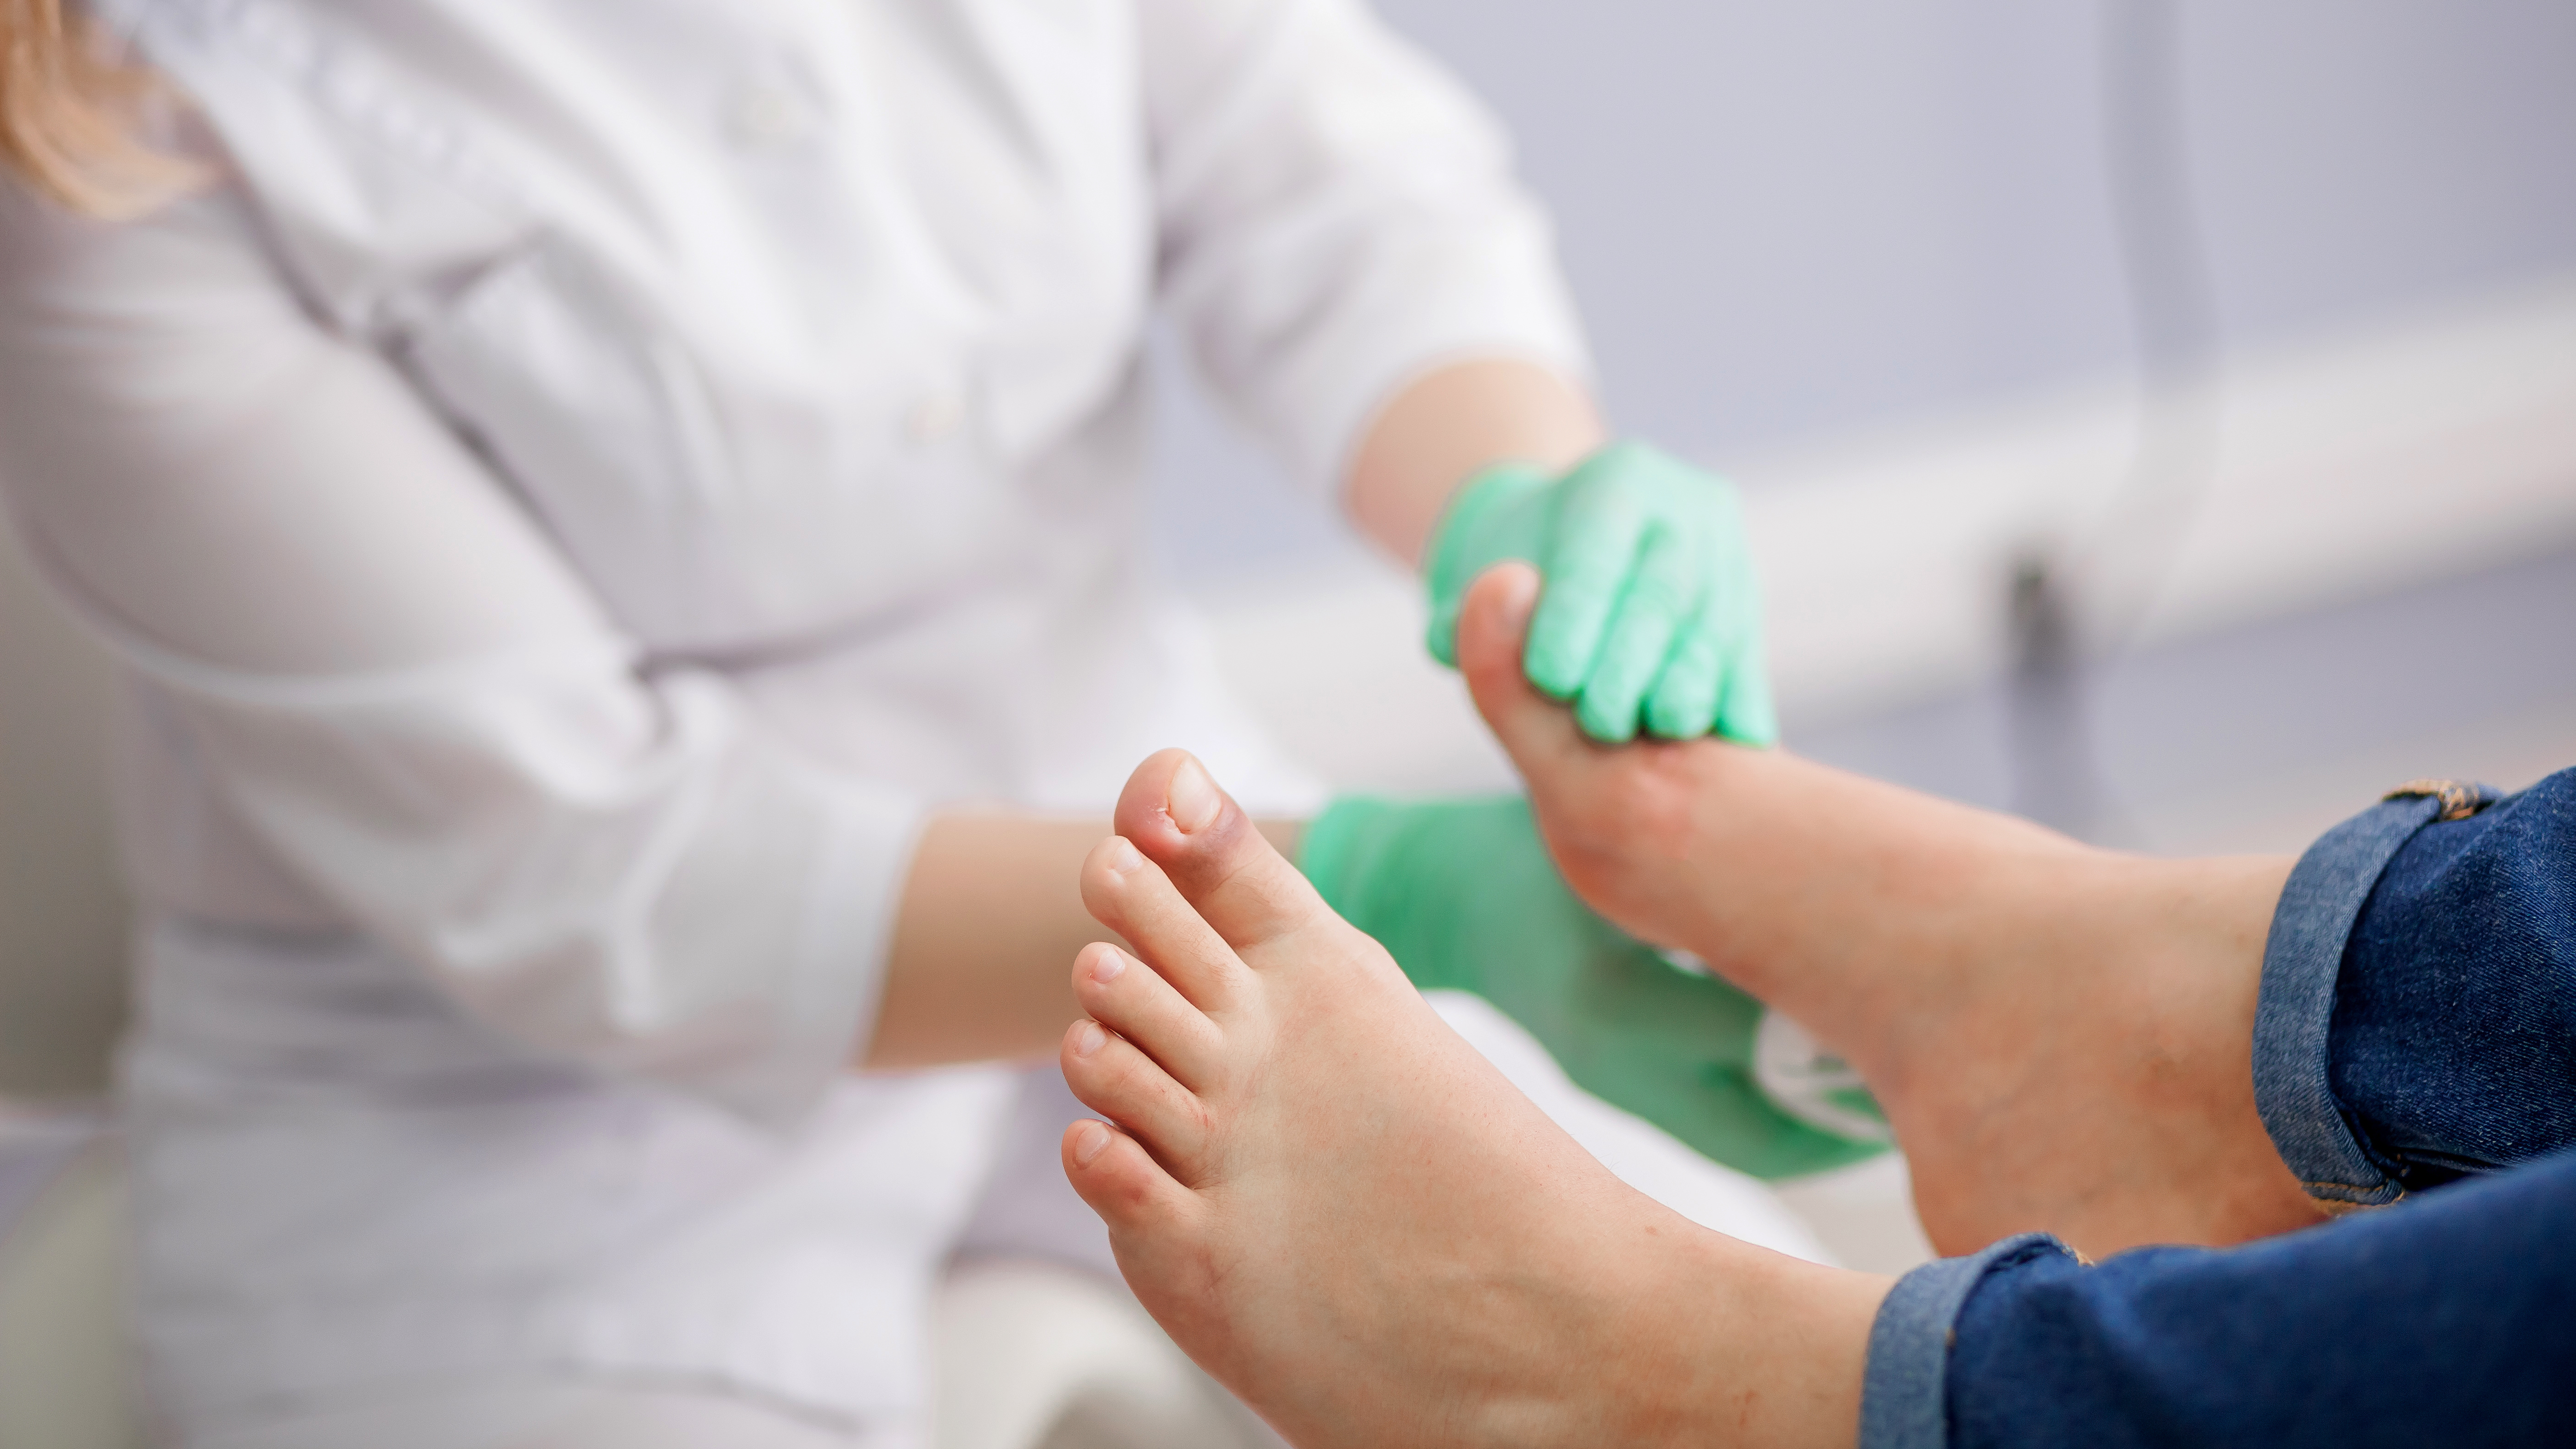 Photograph of podiatrist examining feet with injured great toe